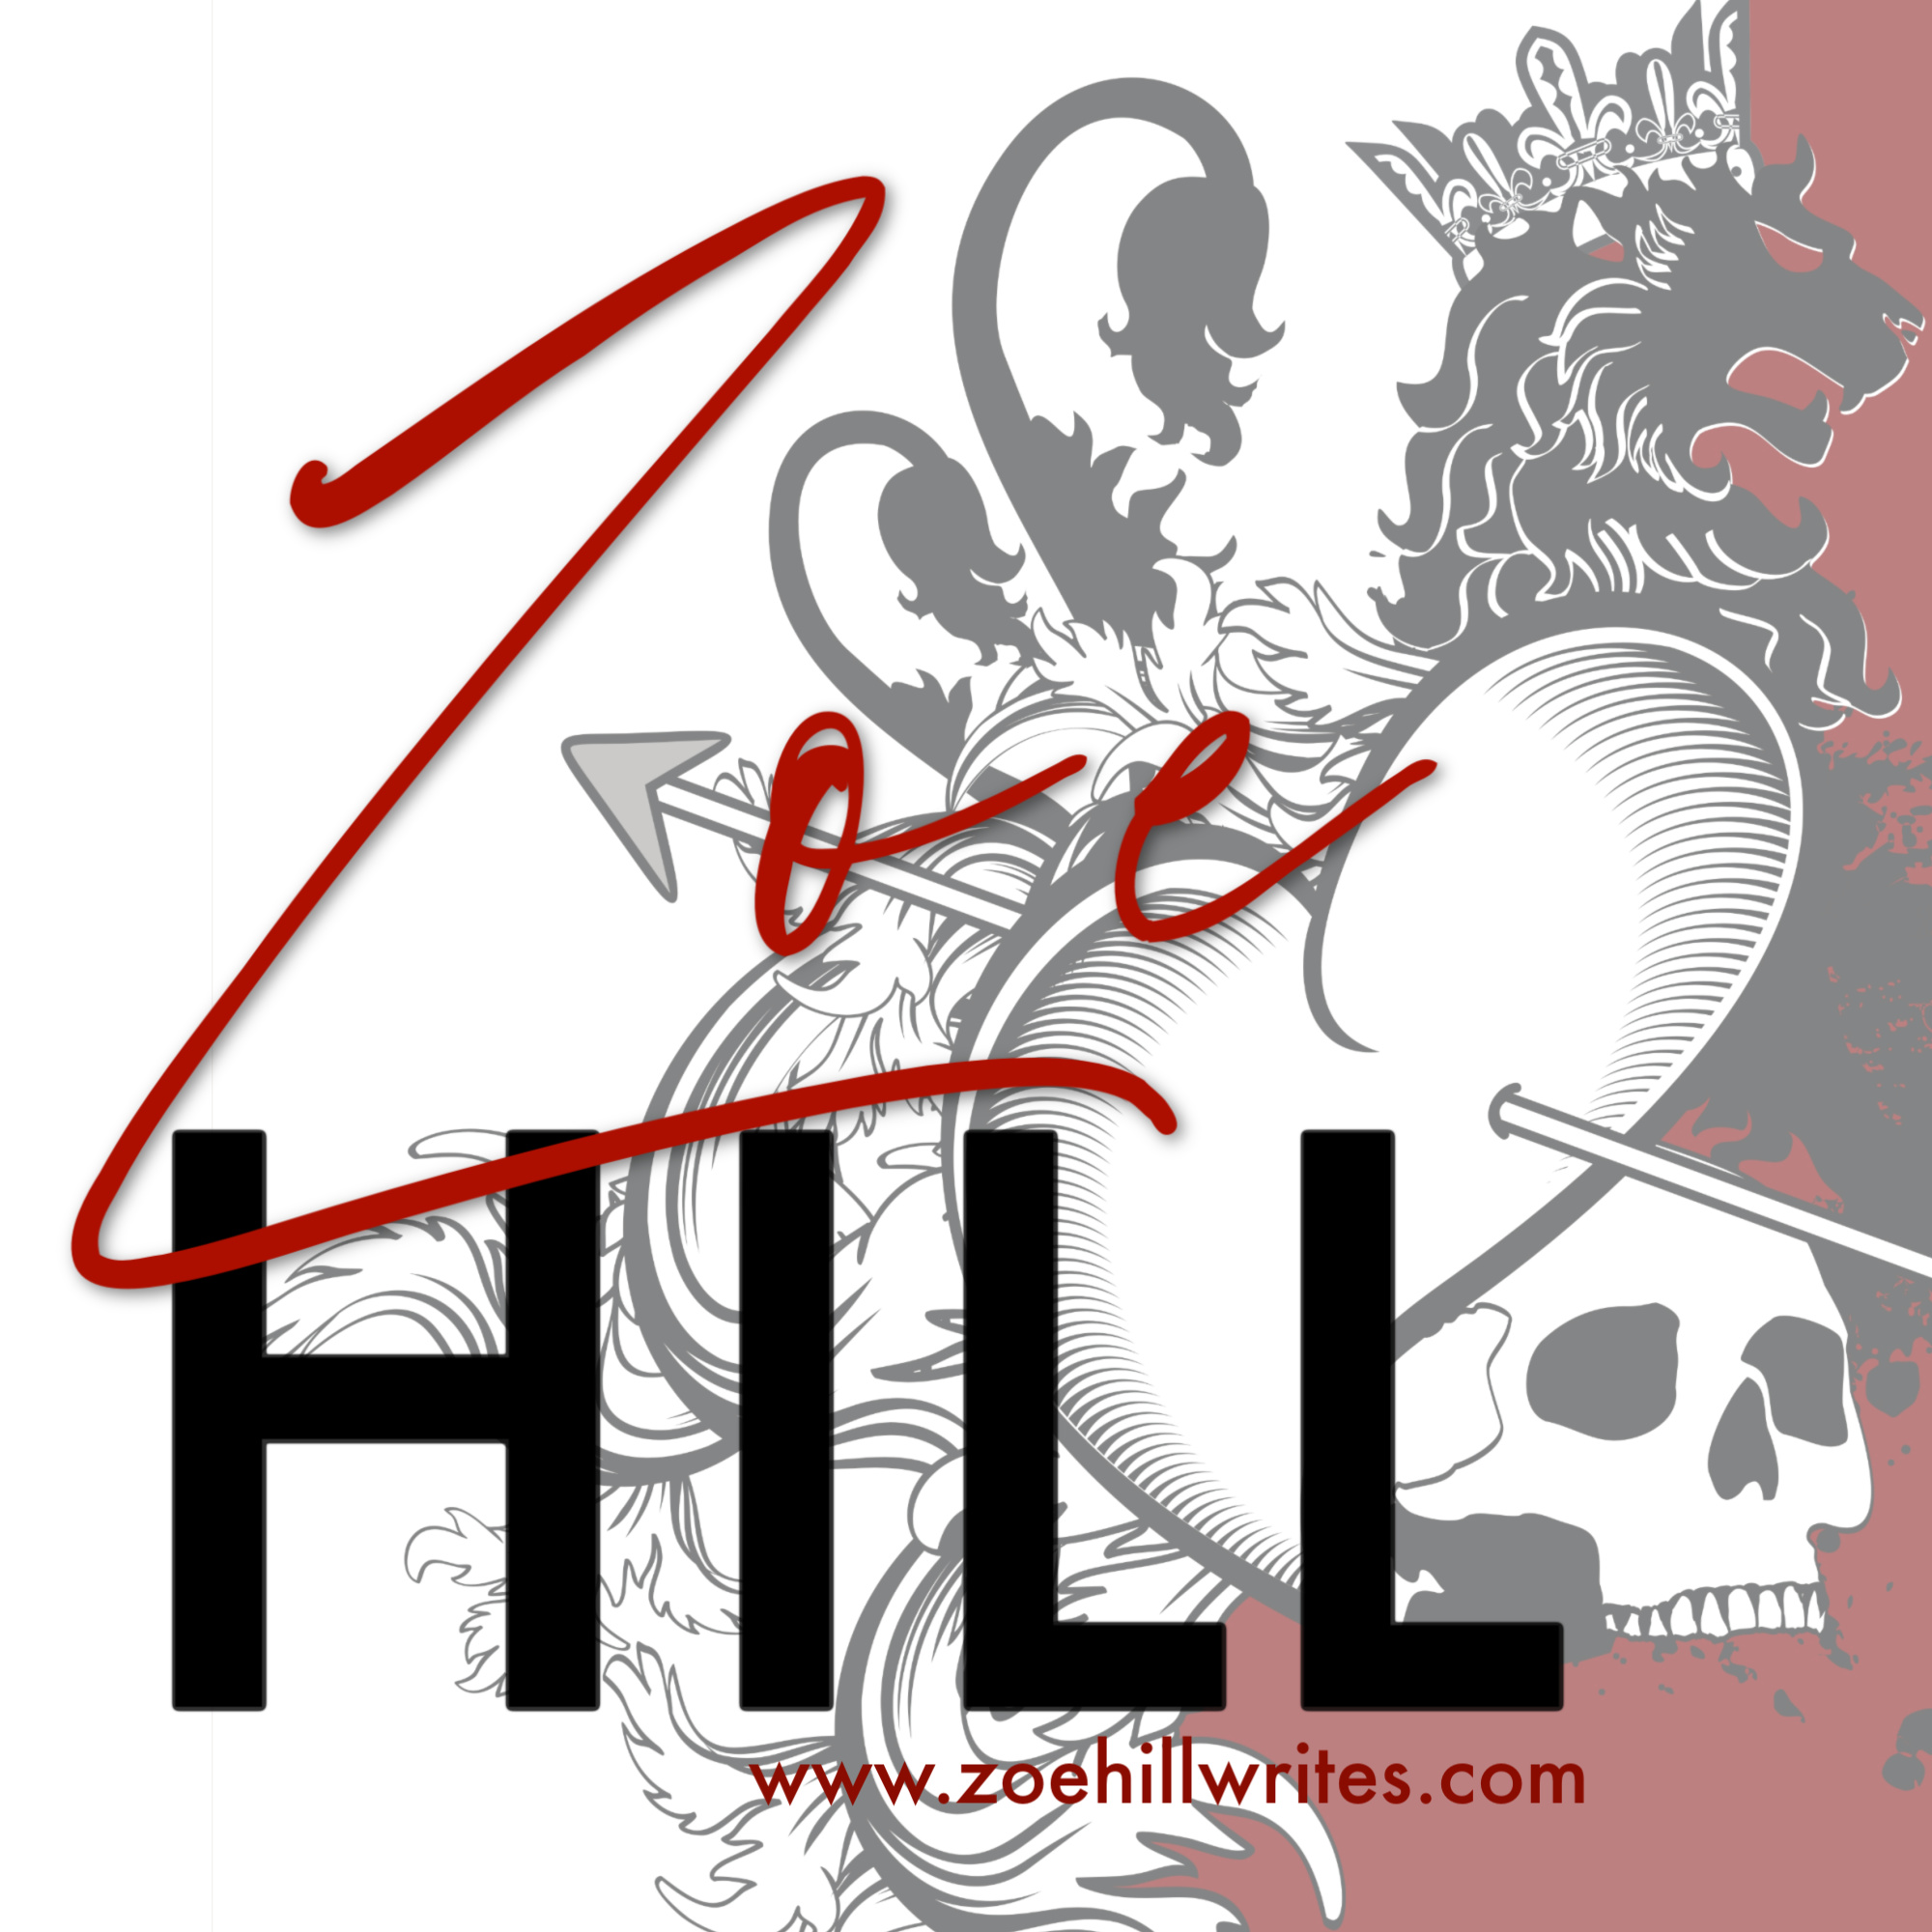 Zoe Hill square logo